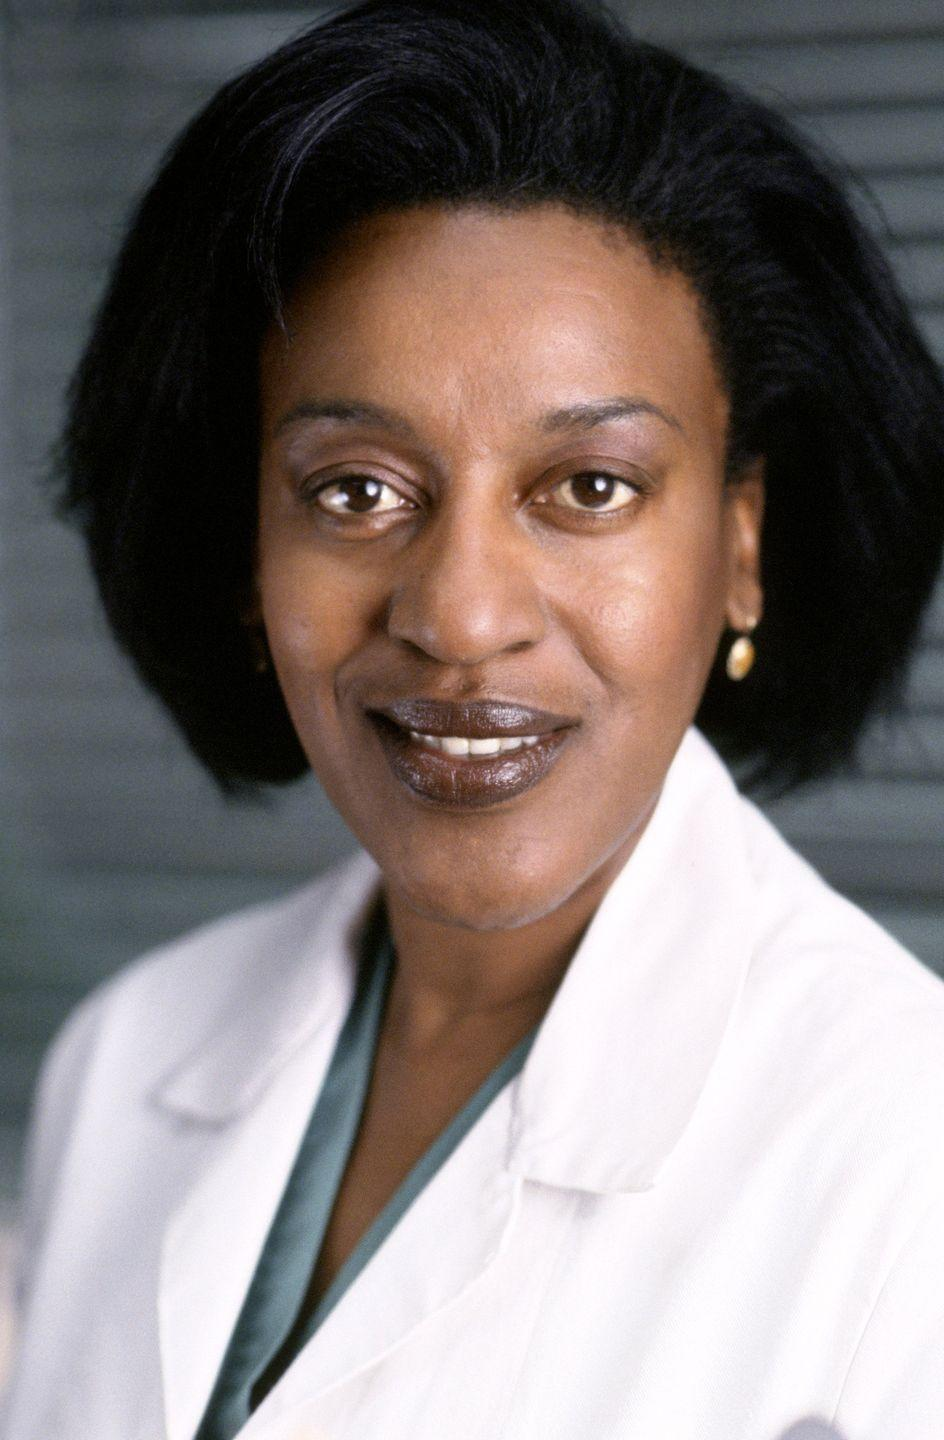 <p>C.C.H. Pounder has appeared on shows like <em>The X-Files</em>, <em>The</em> <em>West Wing,</em> <em>Law and Order</em><em>: Special Victims Unit</em>, and many more. But she's best known for Dr. Angela Hicks from <em>ER</em>. The actress left the show in season 4 to pursue opportunities in film and in 2009 landed a role in the Academy Award-winning film <em>Avatar</em>. </p>